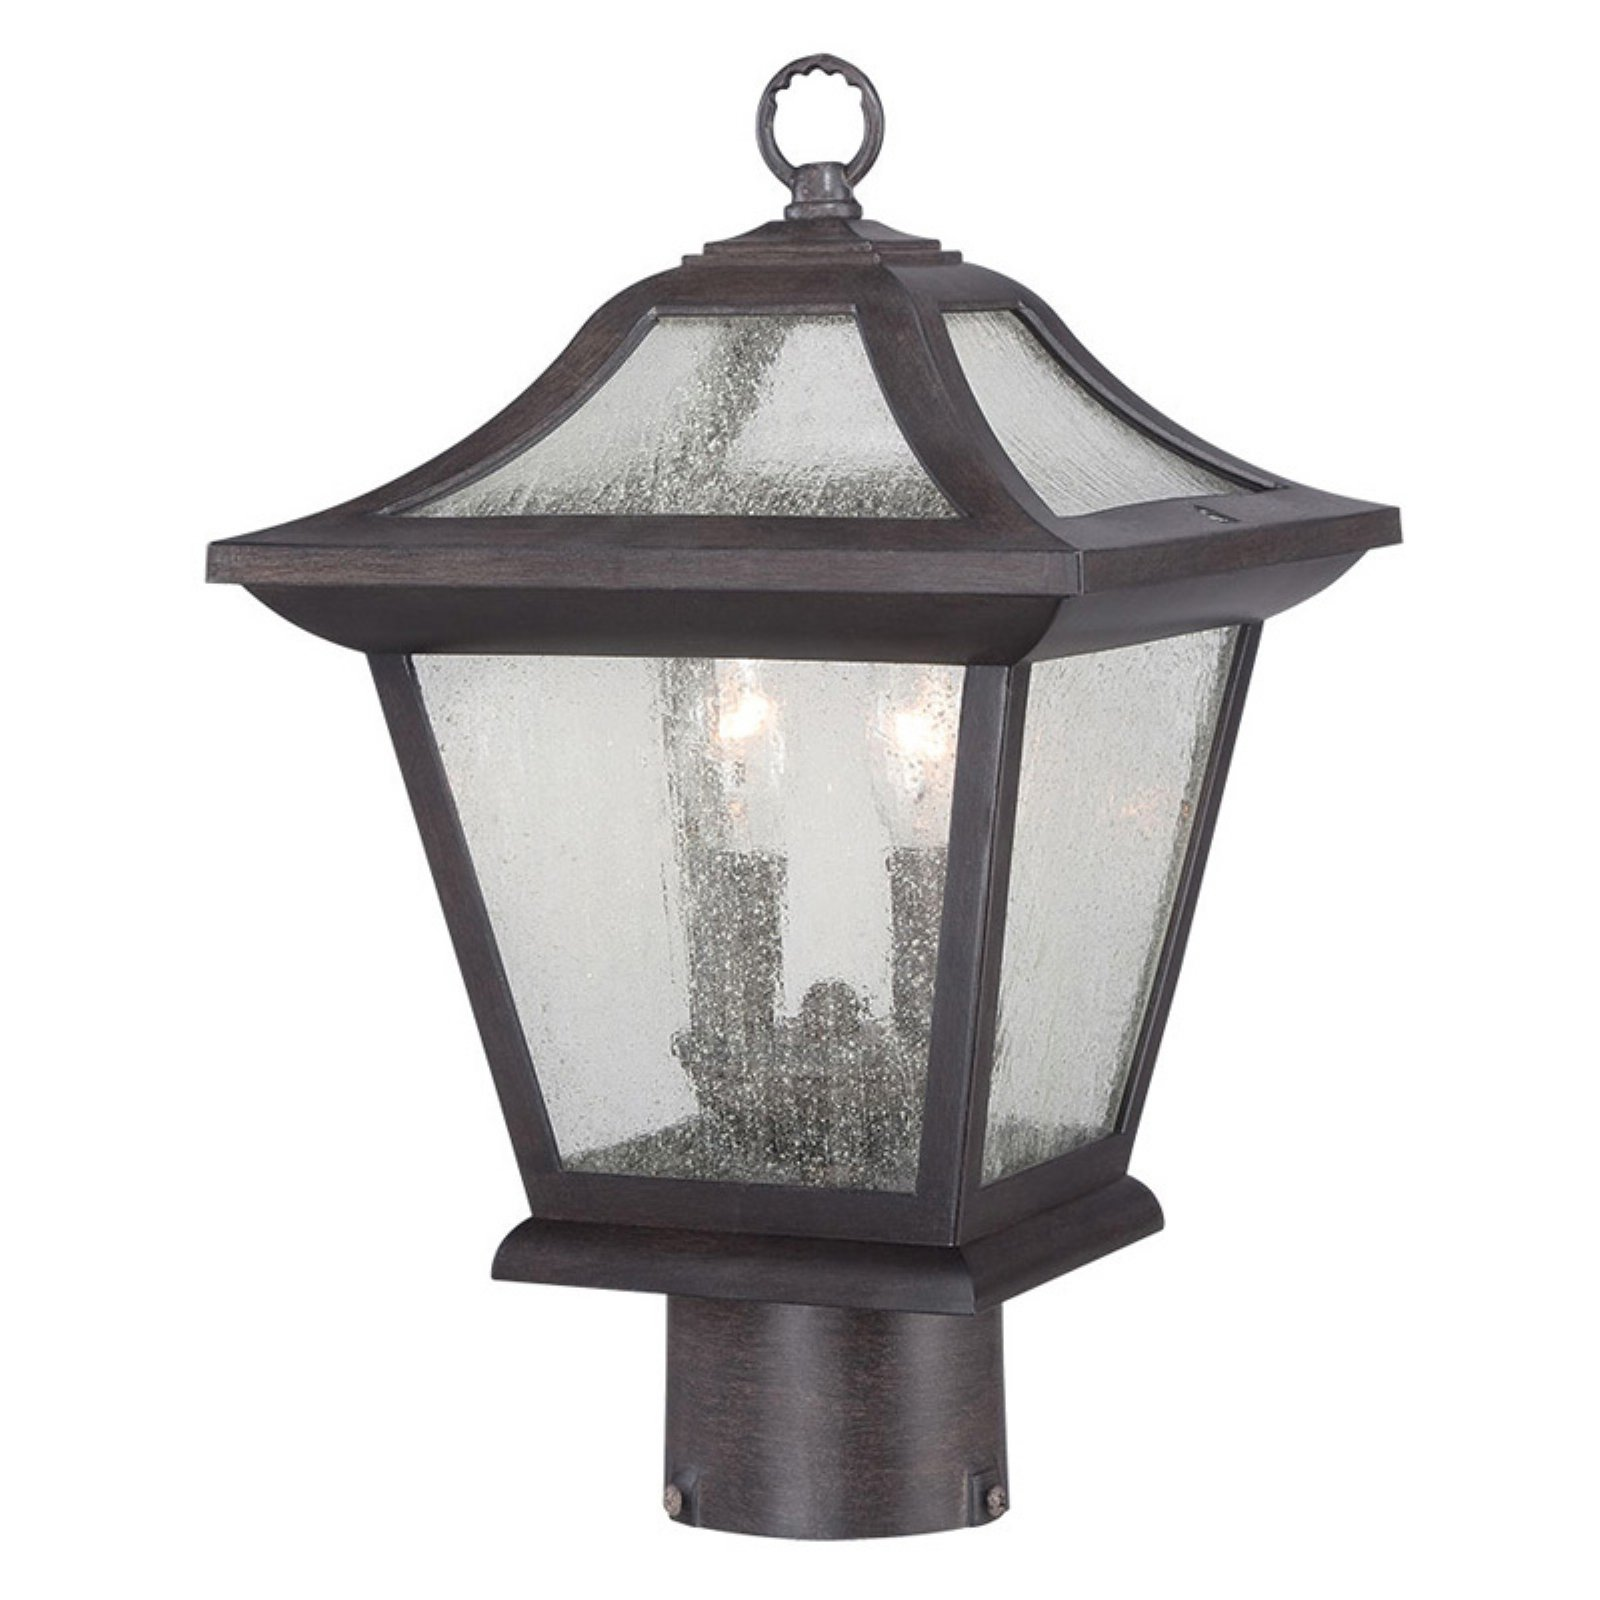 Image of Acclaim Lighting Aiken Outdoor Post Lantern Light Fixture